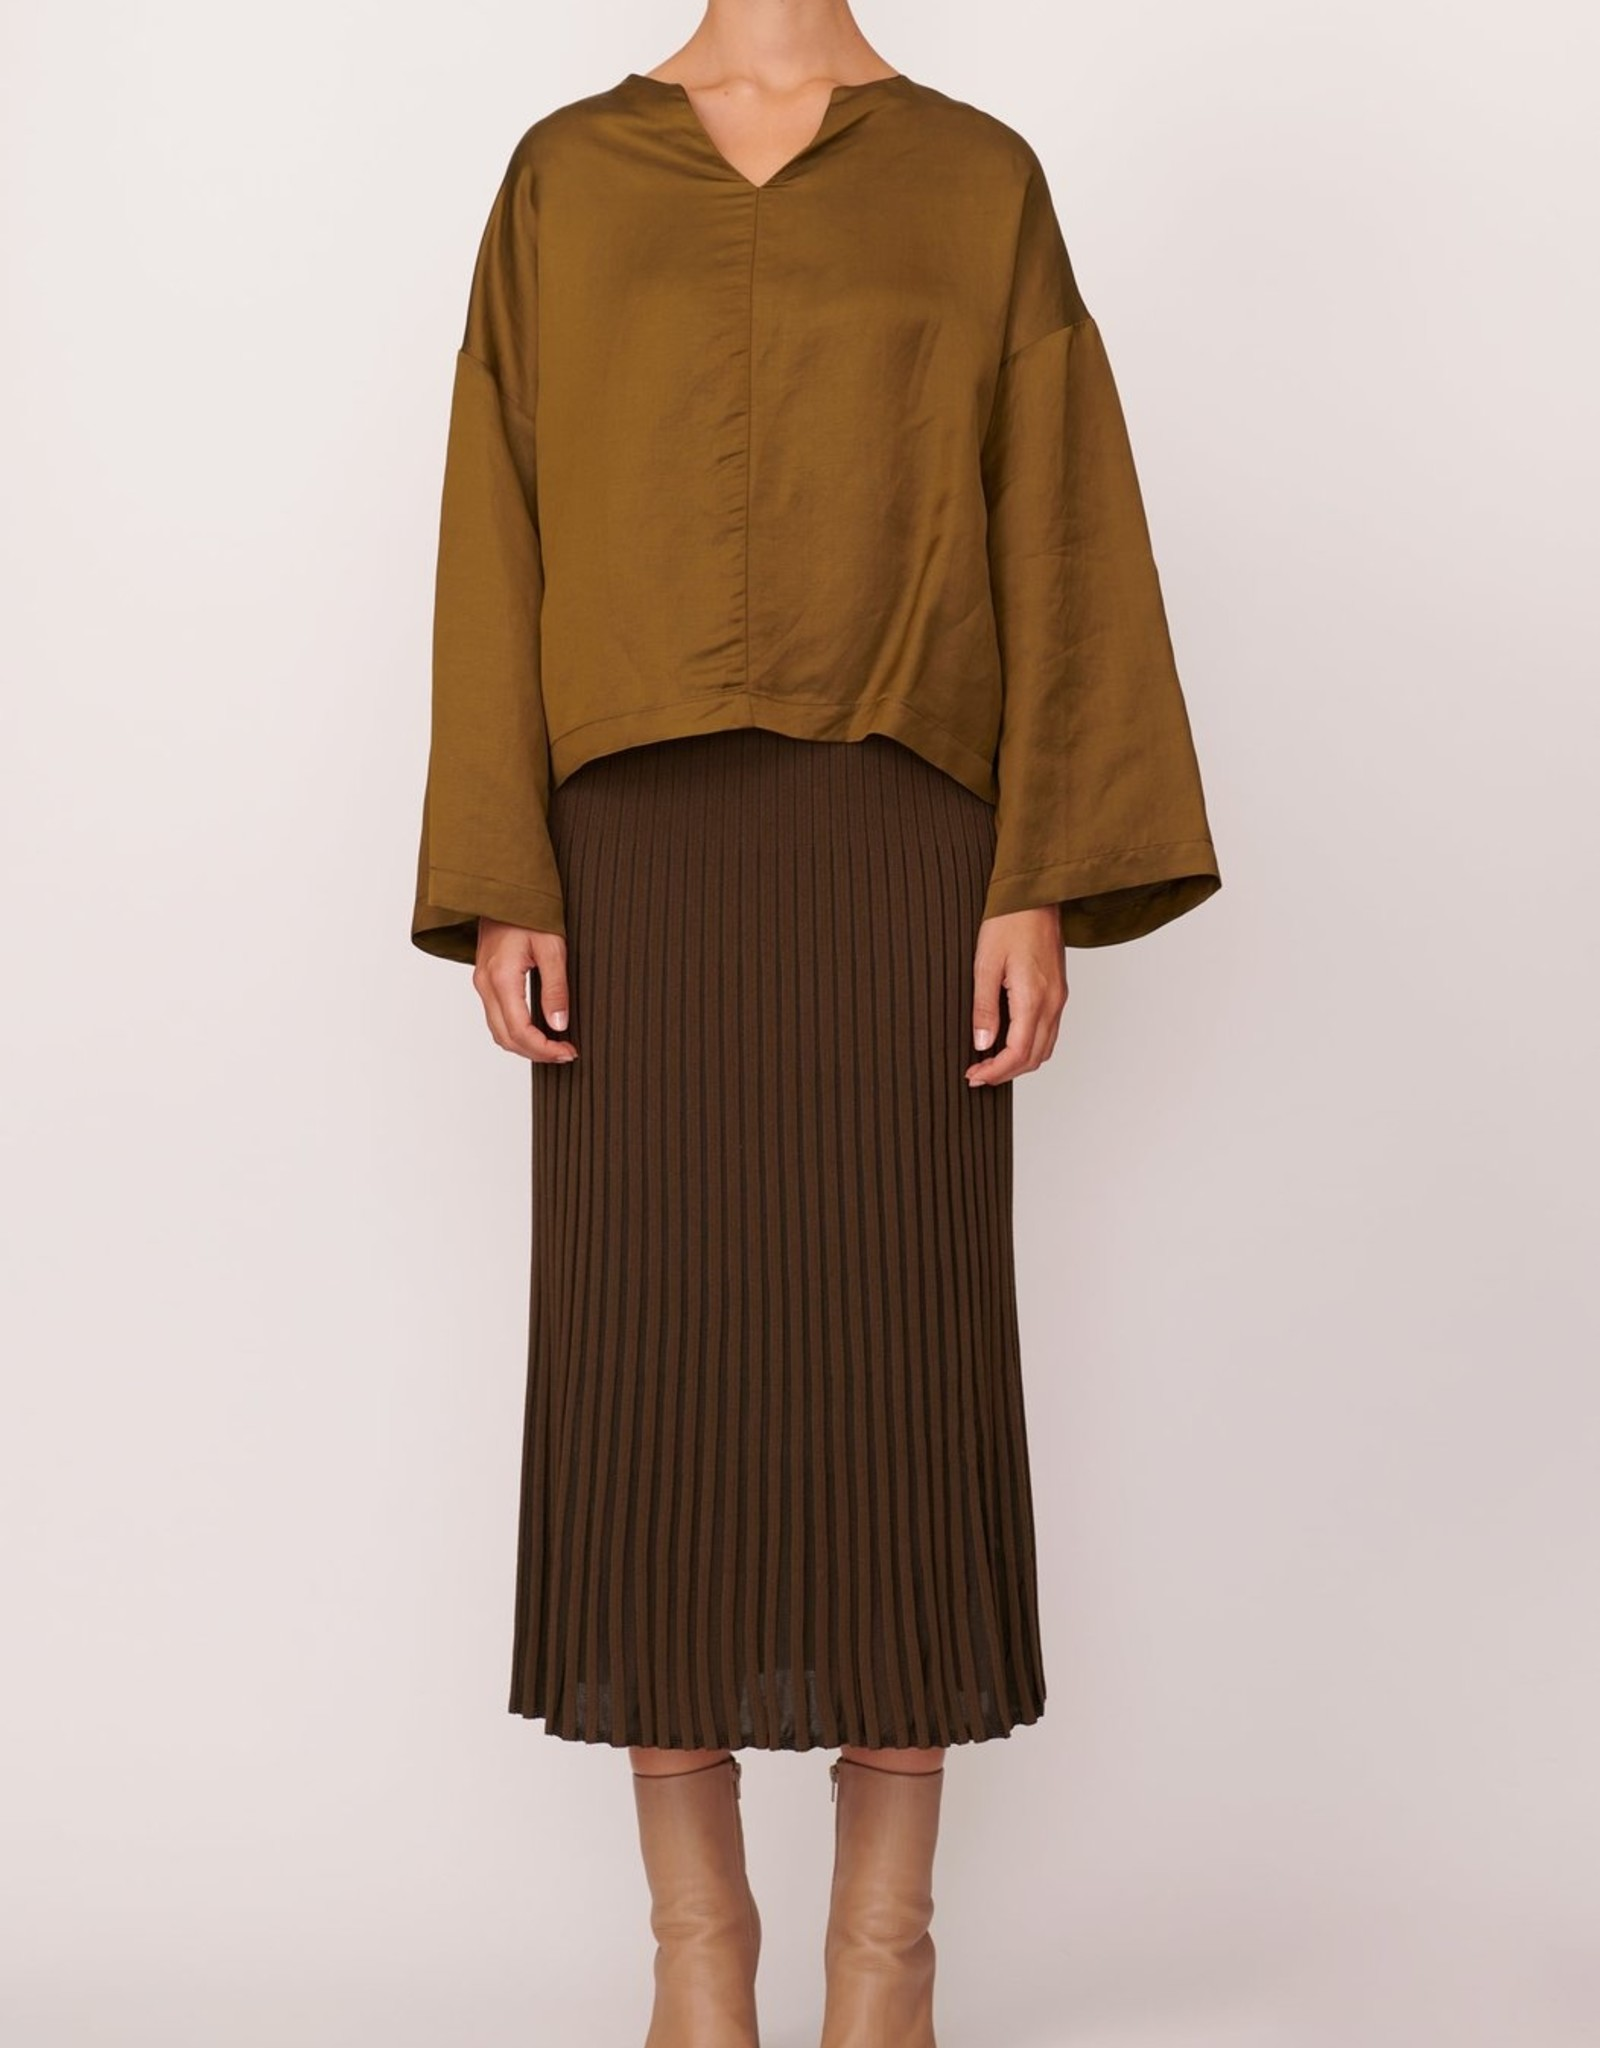 SALE - POL SCOPE RIBBED SKIRT KHAKI